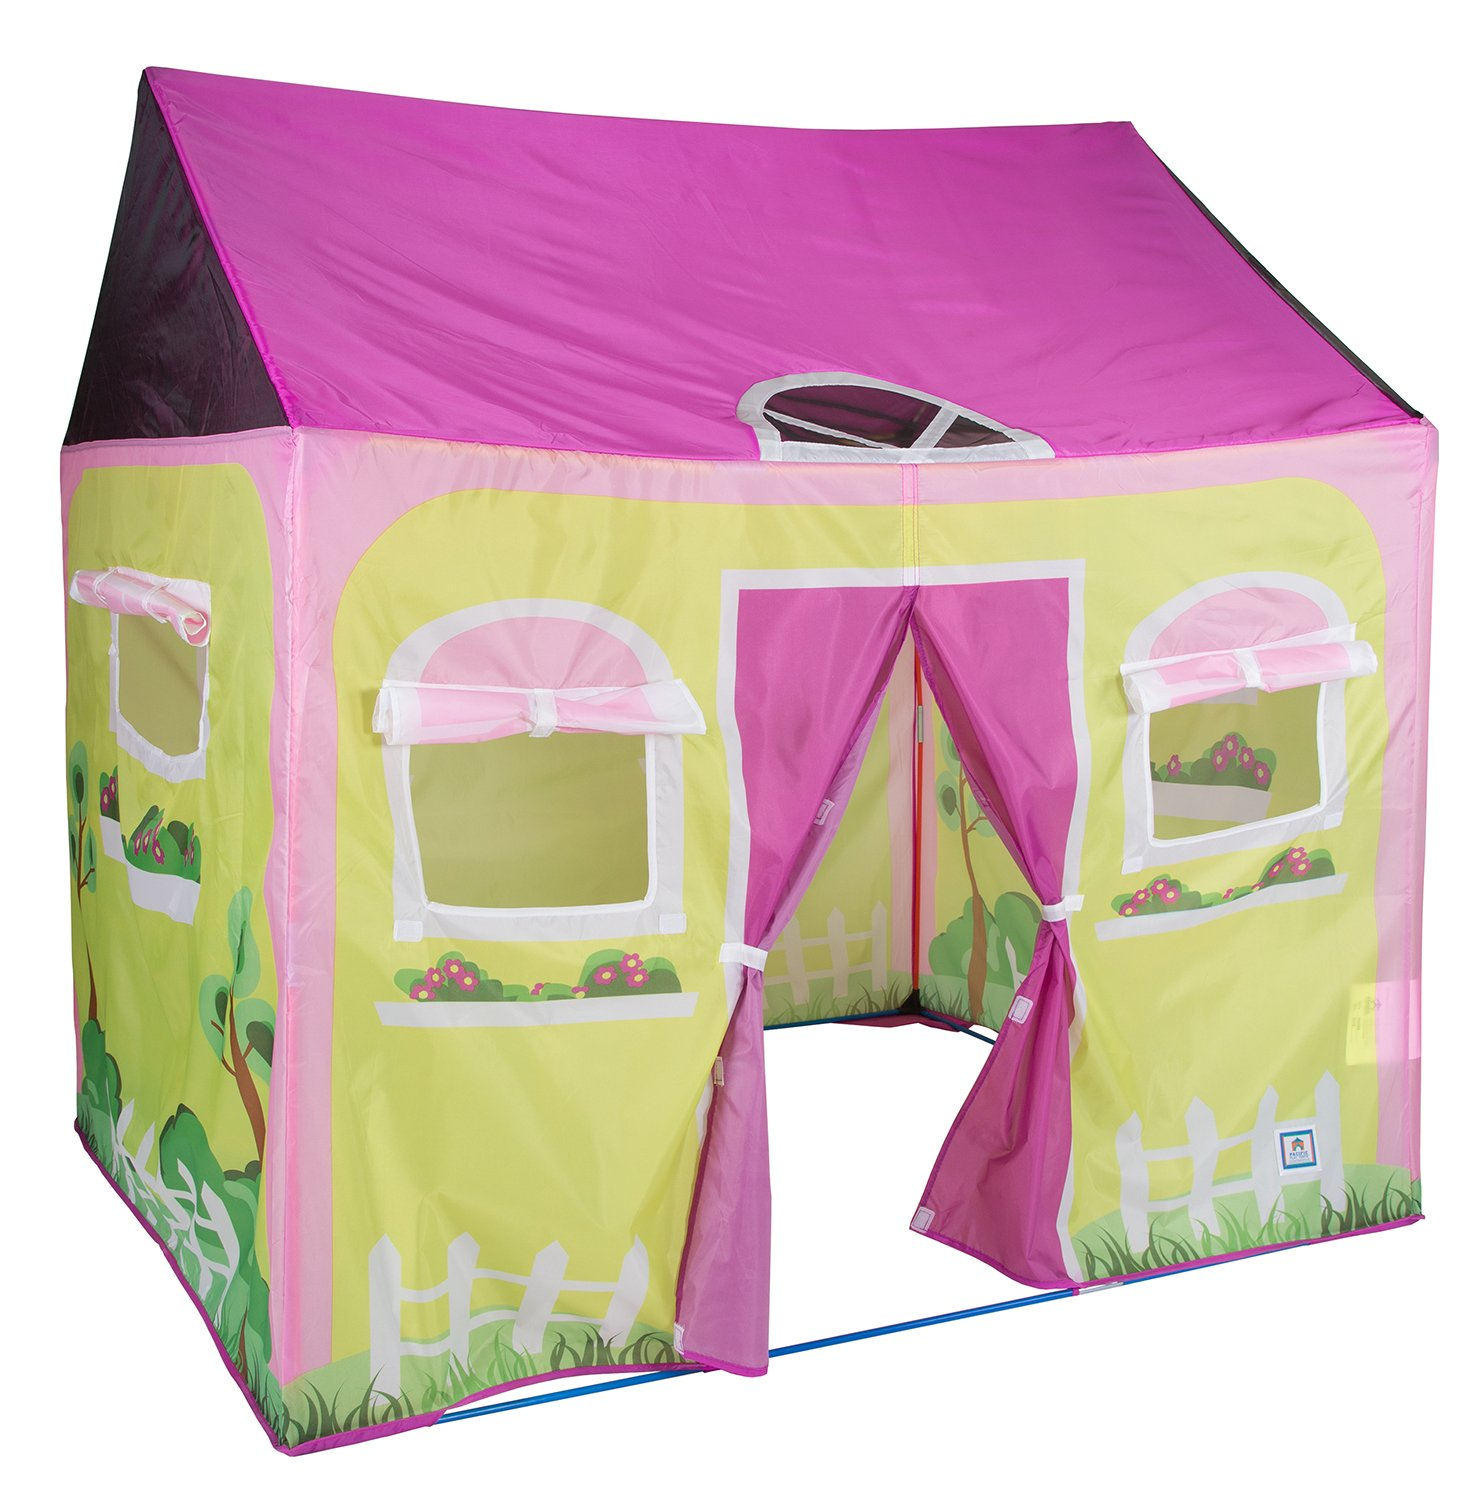 Amazon.com Pacific Play Tents 60600 Cottage House Play Tent - 58  x 48  x 58  Toys u0026 Games  sc 1 st  Amazon.com & Amazon.com: Pacific Play Tents 60600 Cottage House Play Tent - 58